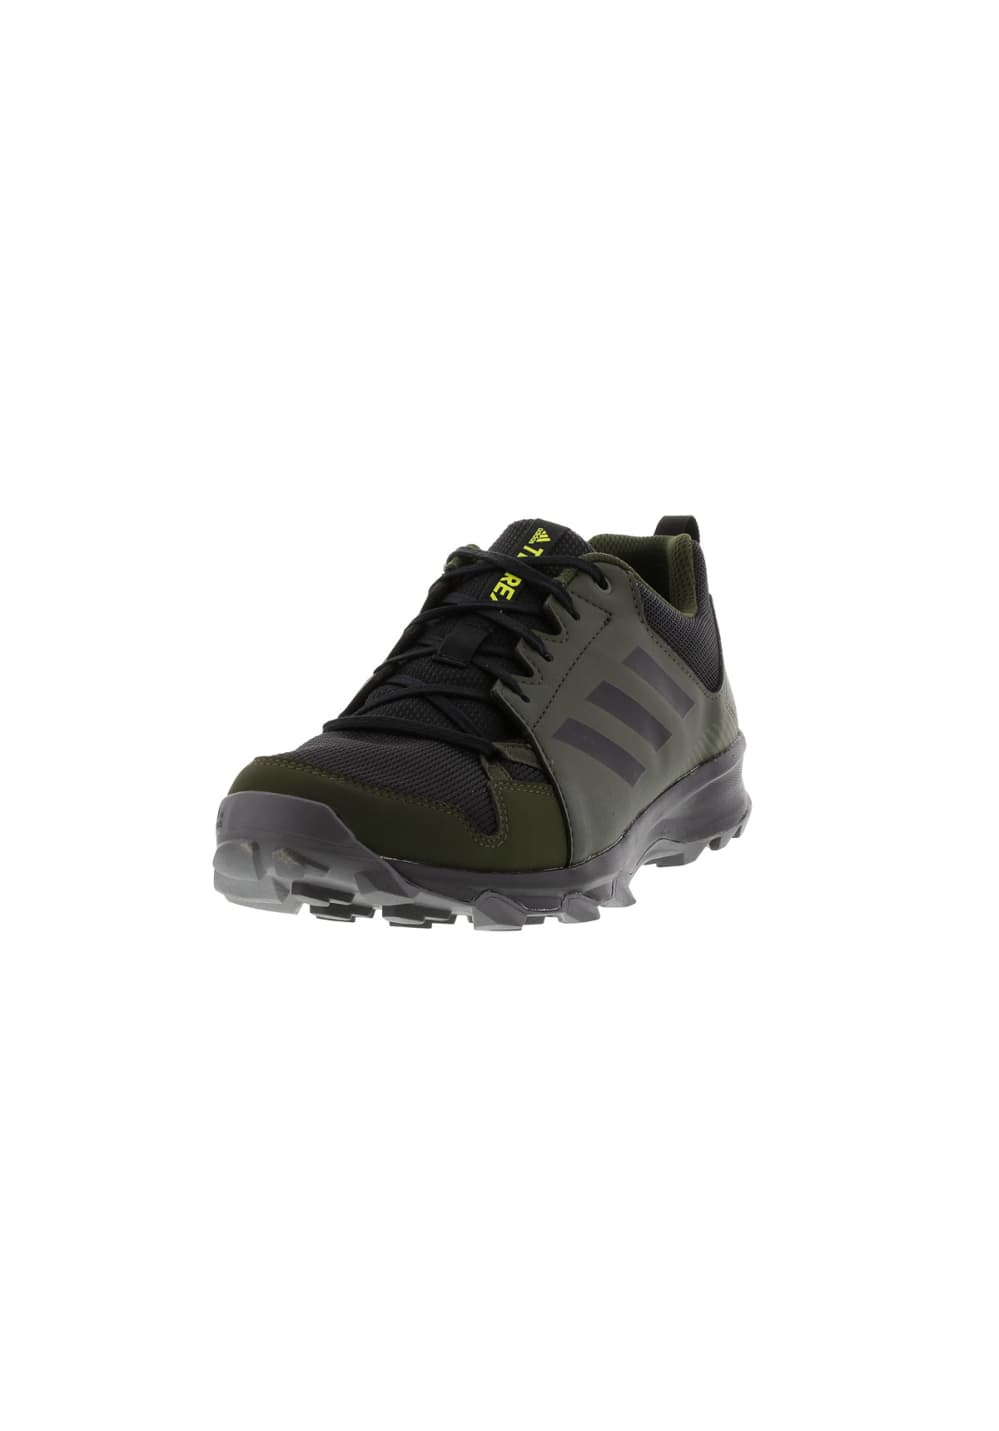 28a70e49eef Next. -60%. adidas TERREX. Terrex Tracerocker Gtx - Outdoor shoes for Men